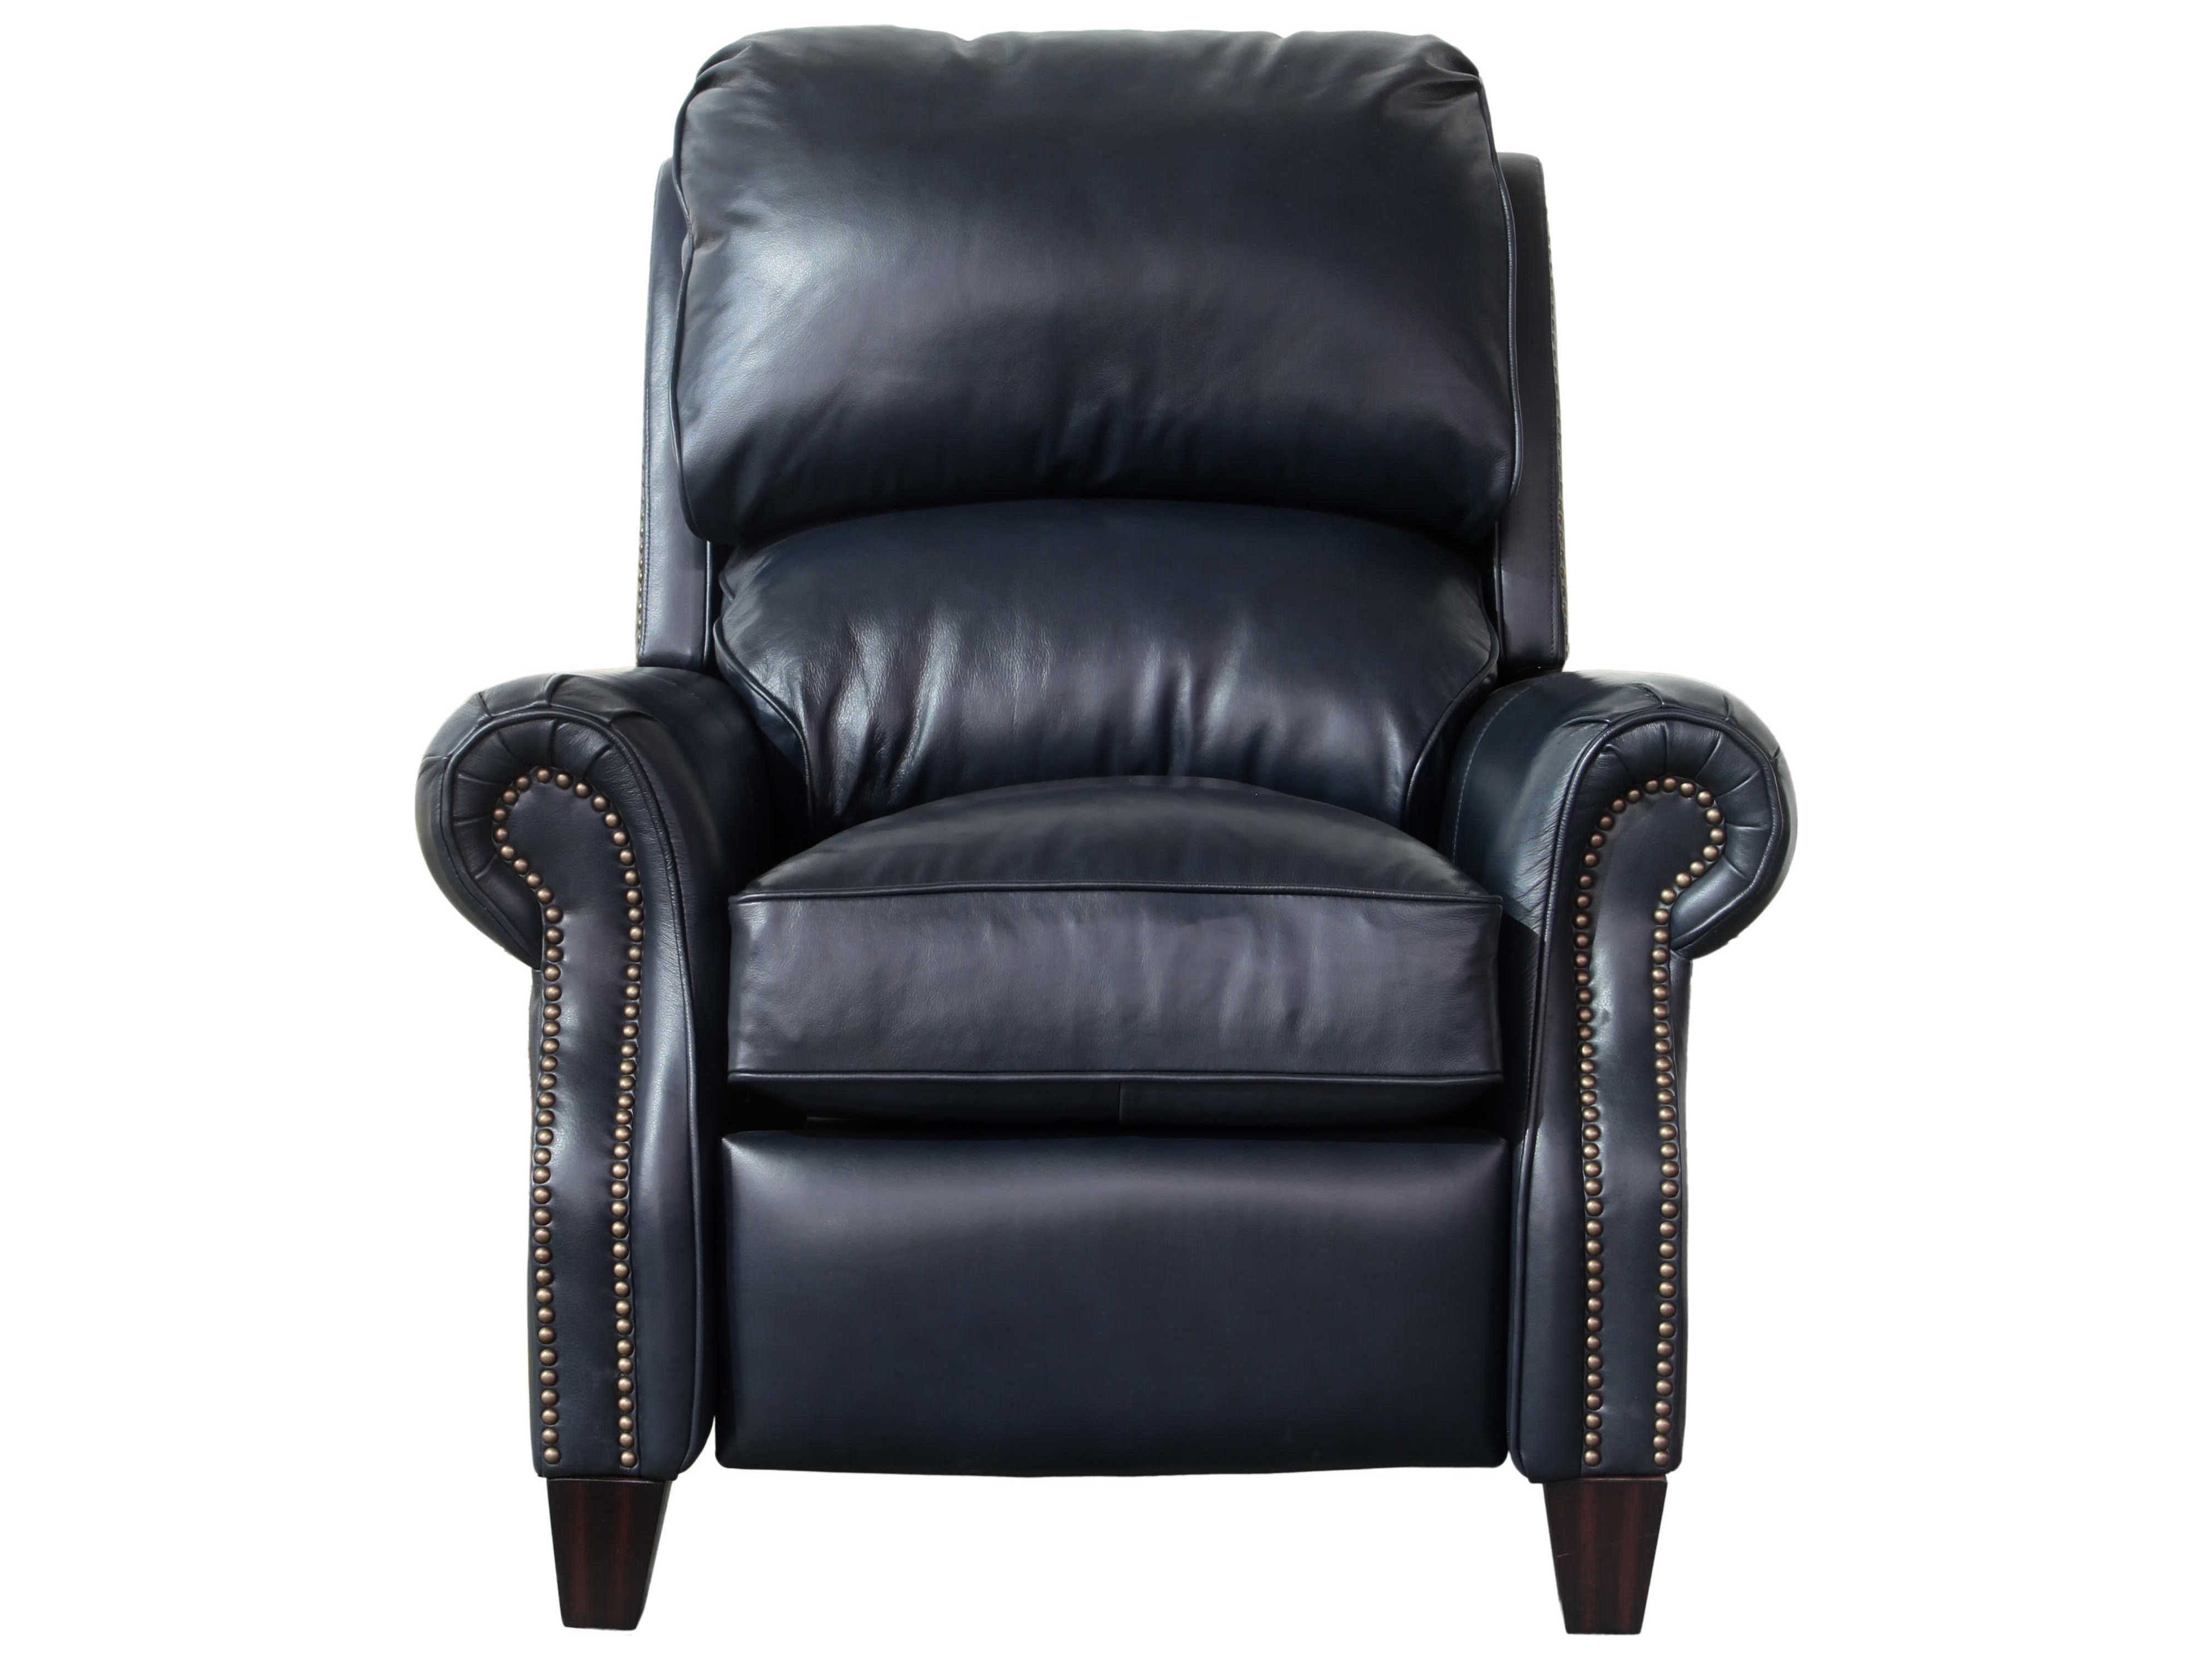 Luxury Home Decor Shopping For Indoor Outdoor Leather Recliner Recliner Barcalounger